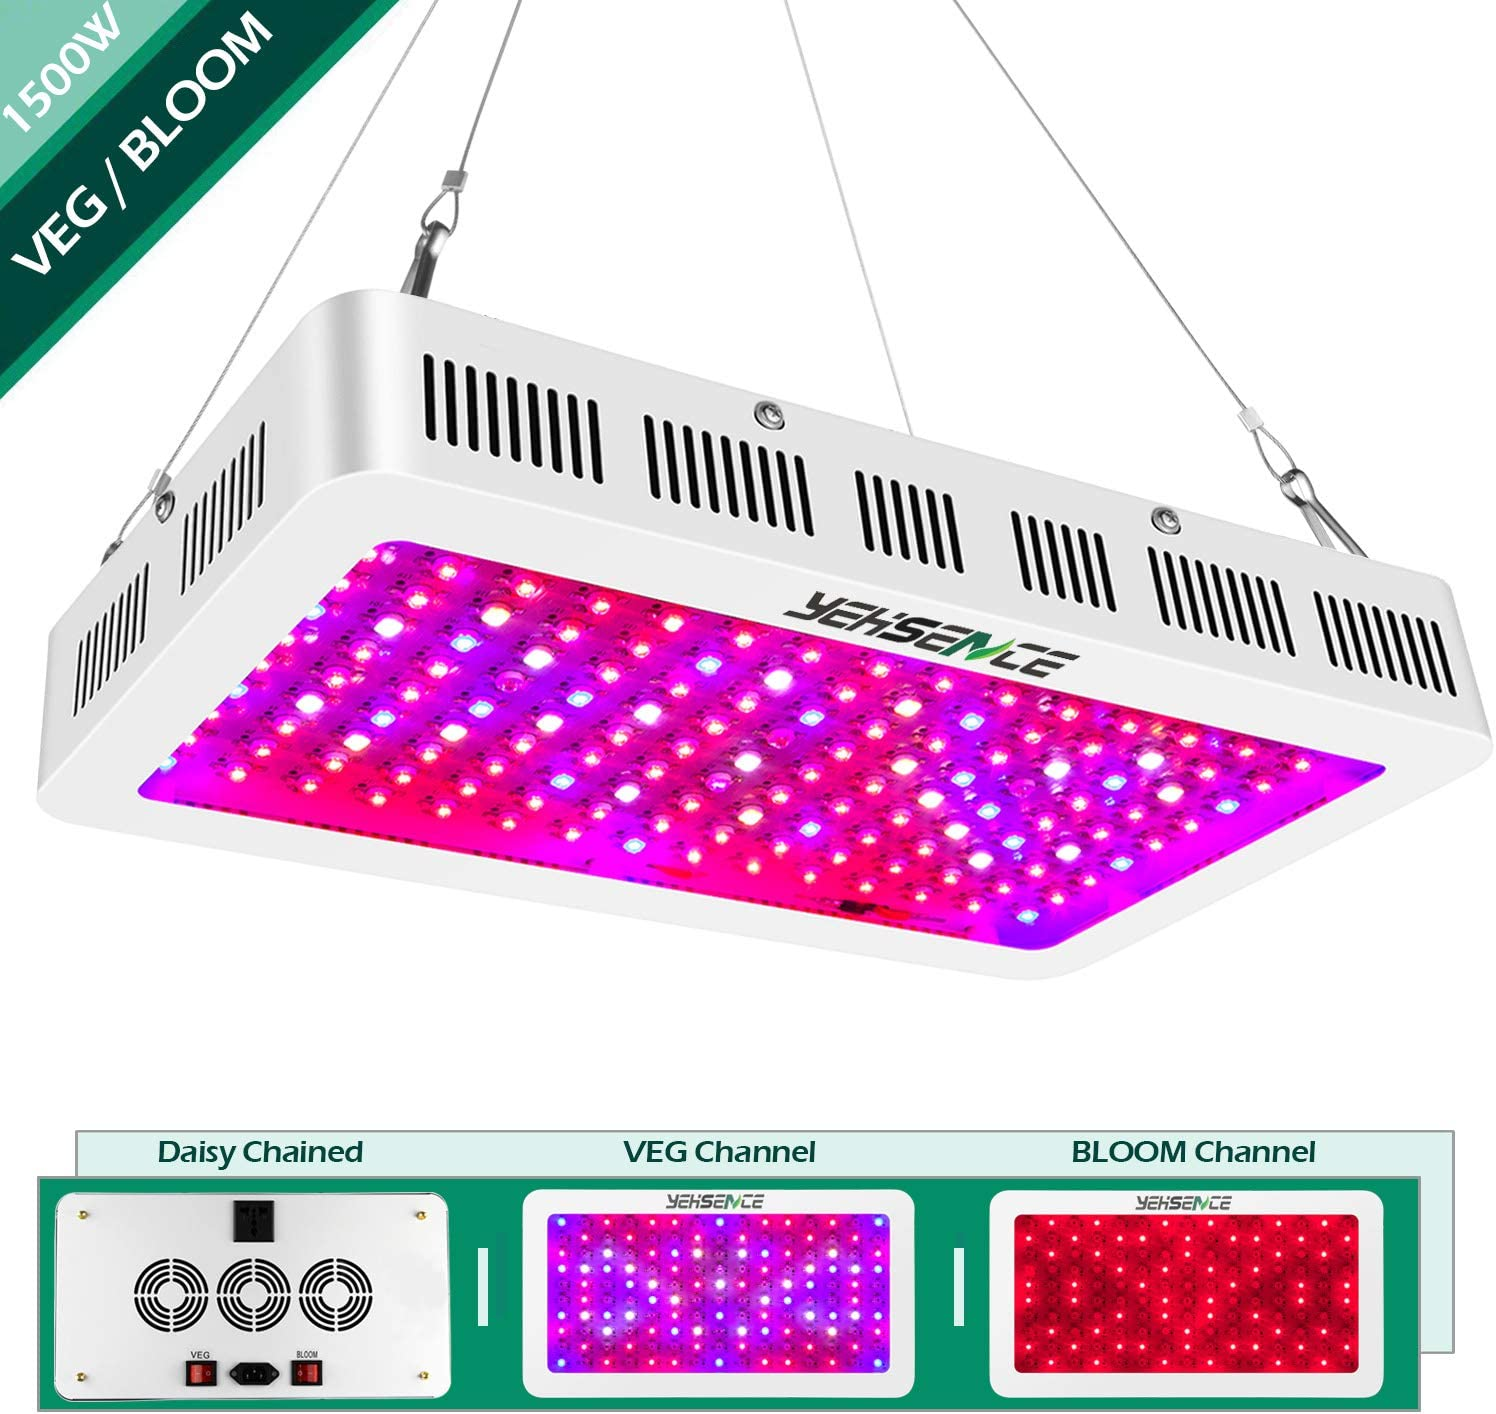 Yehsence 1500w LED Grow Light with Bloom and Veg Switch, 15W LED Triple-Chips LED Plant Growing Lamp Full Spectrum with Daisy Chained Design for Professional Greenhouse Hydroponic Indoor Plants